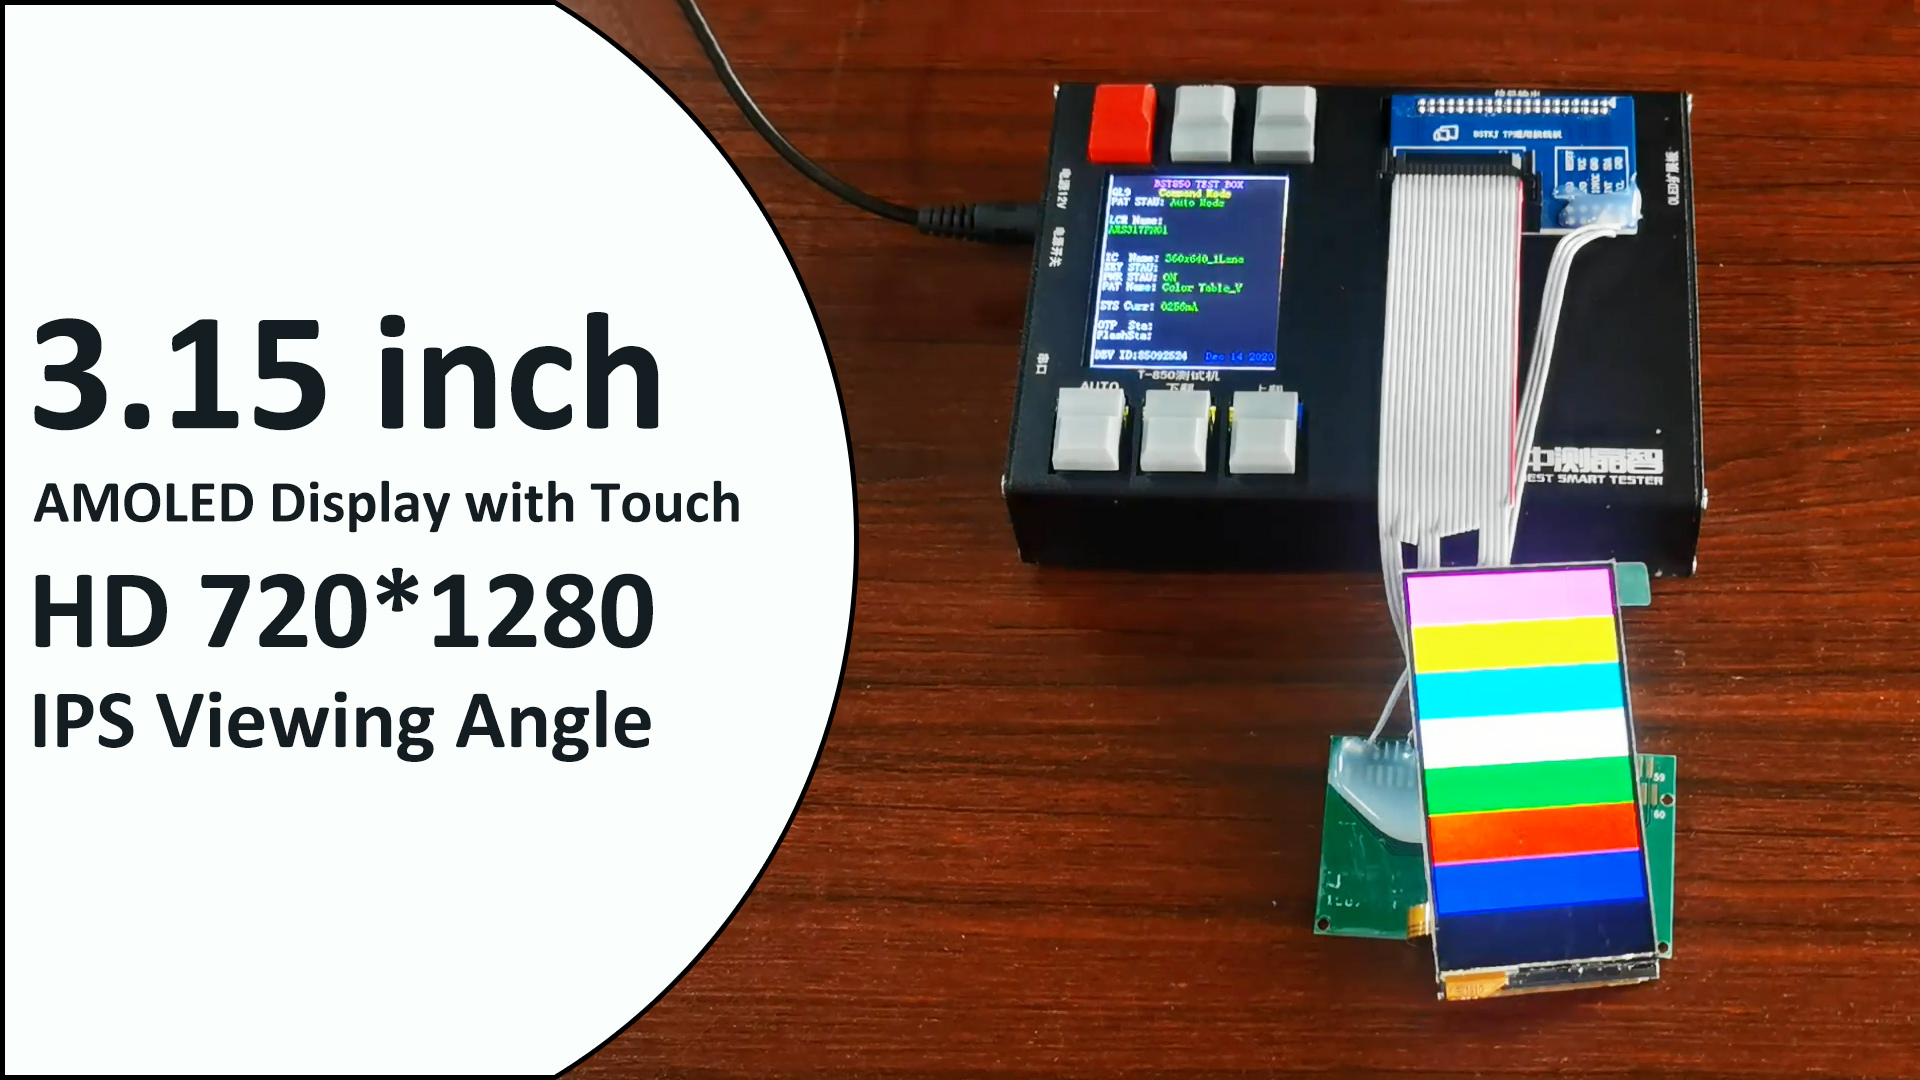 New Arrival--3.15 inch 720P AMOLED Display with Oncell Capacitive Touch Panel 720*1280 Color OLED Screen LCD Module Support Customize Cover Panel Display Modules Manufacturer toppoplcd